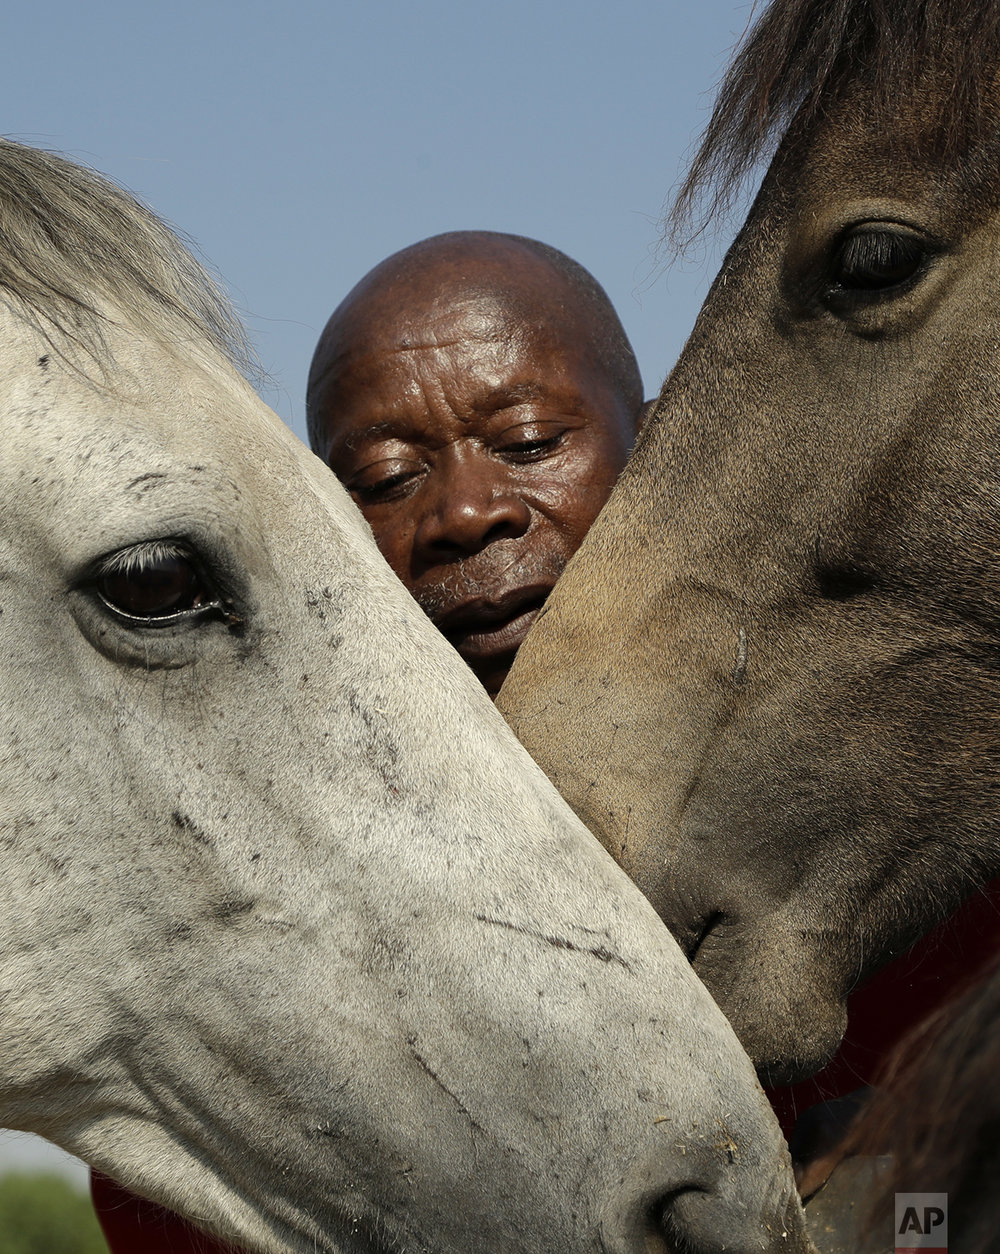 In this Tuesday, March 14, 2017 photo, Enos Mafokate embraces his horses at the Soweto Equestrian Centre in Johannesburg, South Africa. The respect displayed at Mafokate's equestrian center in Soweto is a far cry from the tensions under South Africa's previous apartheid system of racial discrimination that erupted into violence more than 40 years ago Friday, when dozens of protesting black students were killed by security forces in the 1976 Soweto uprising.  (AP Photo/Themba Hadebe)